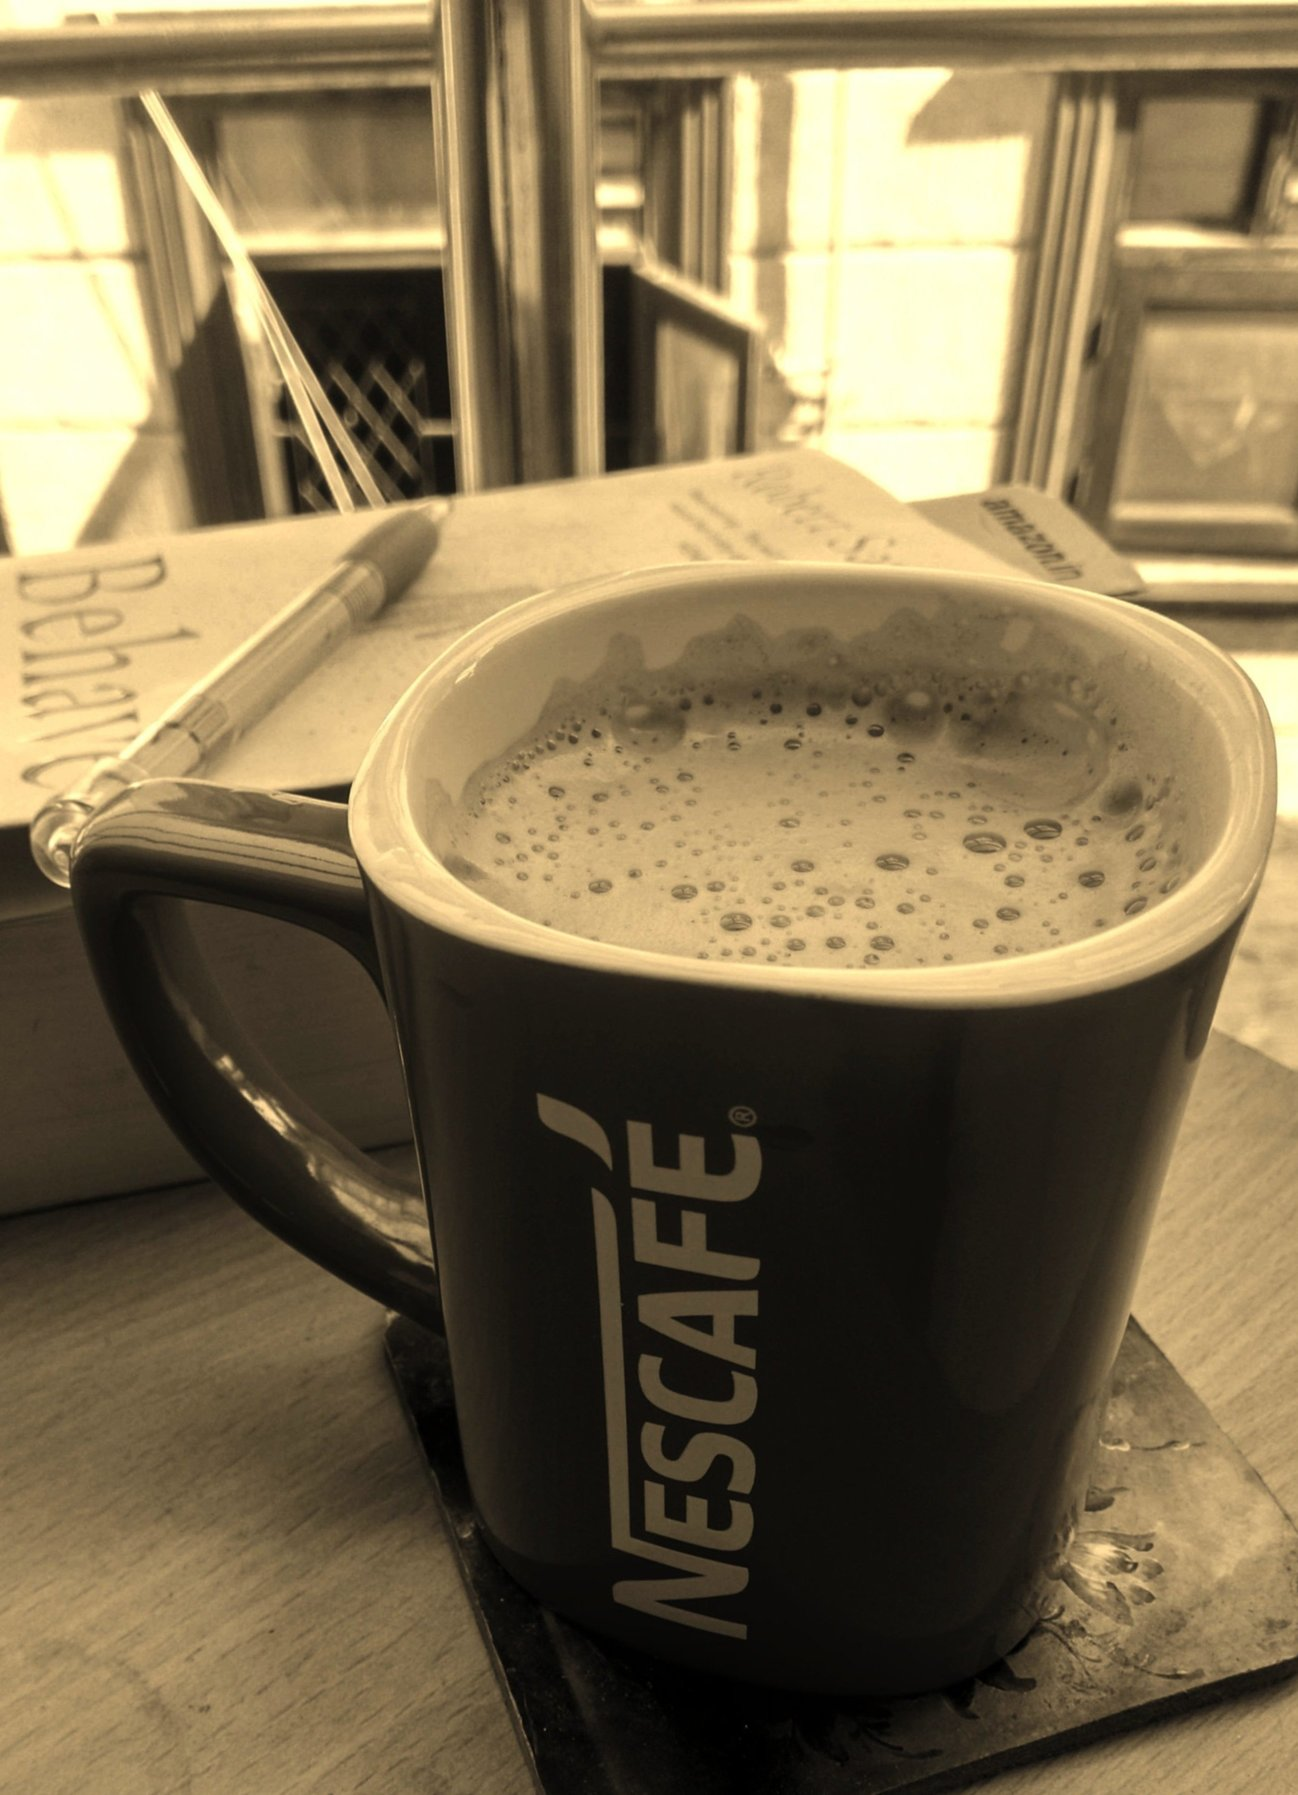 Aesthetic Blasphemy | Nescafe coffee cup image